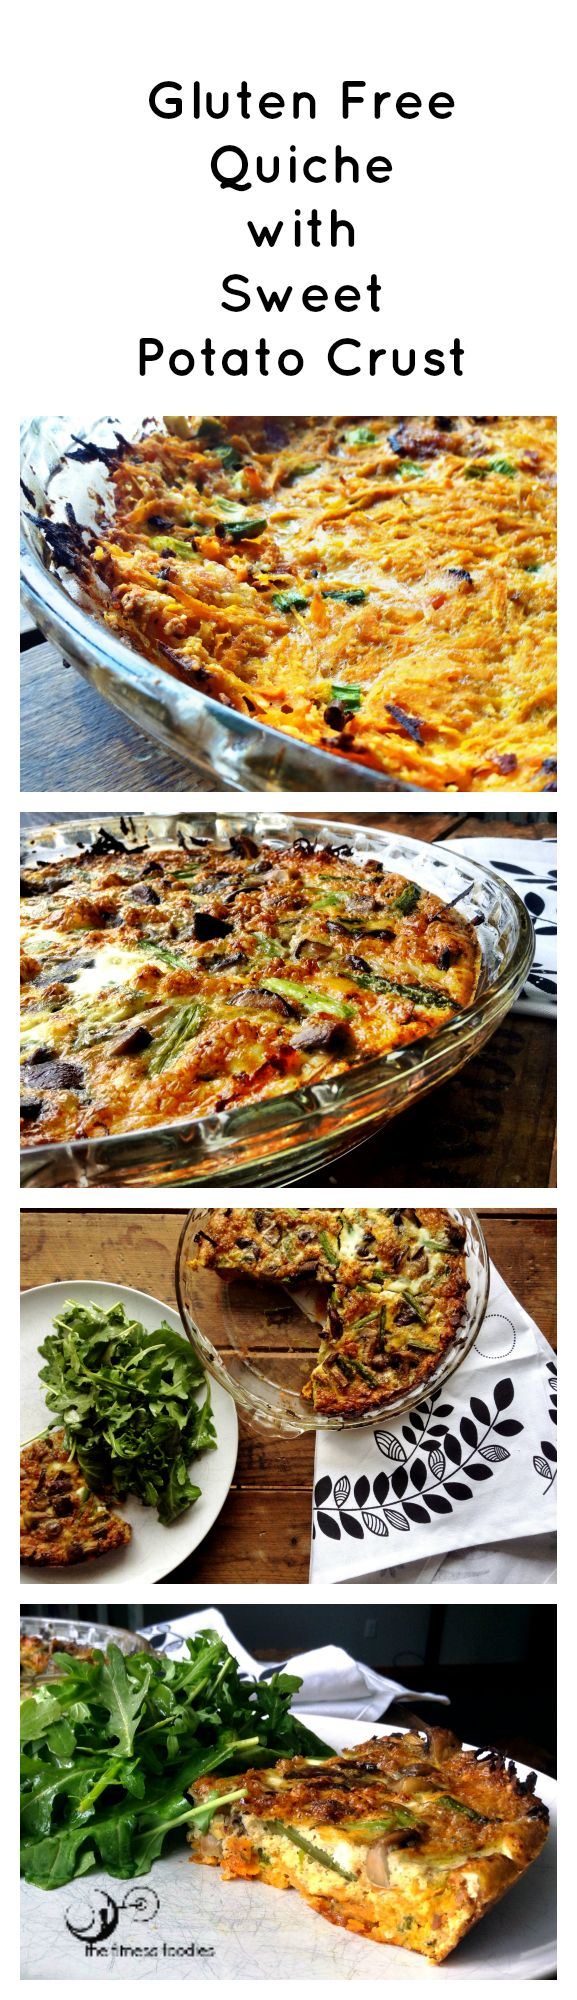 Get the recipe for this grain, gluten, dairy free quick at: http://thefitnessfoodies.com/?p=935.   Paleo Quiche.  Whole30 Quiche.